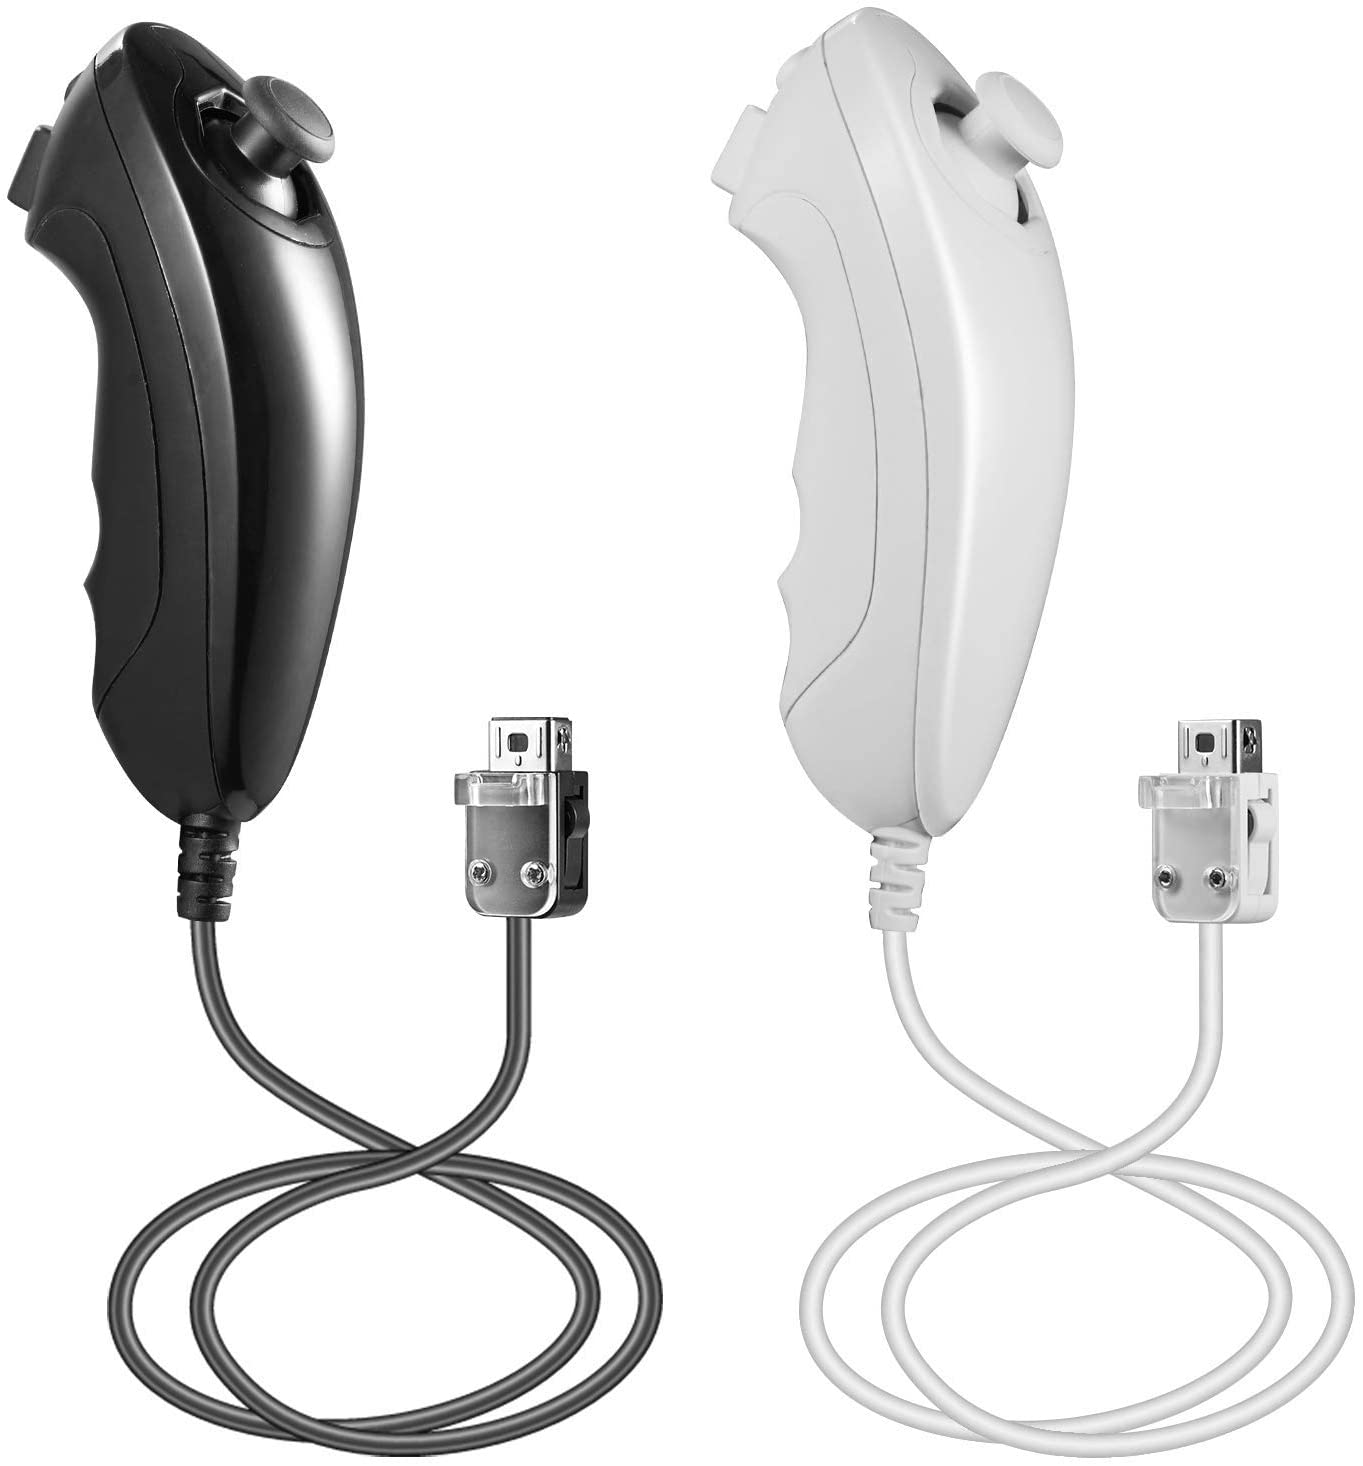 Top Souls 2Pack Nunchuck Remote Controller for Nintendo Wii Wii U Video Game (Black and White)